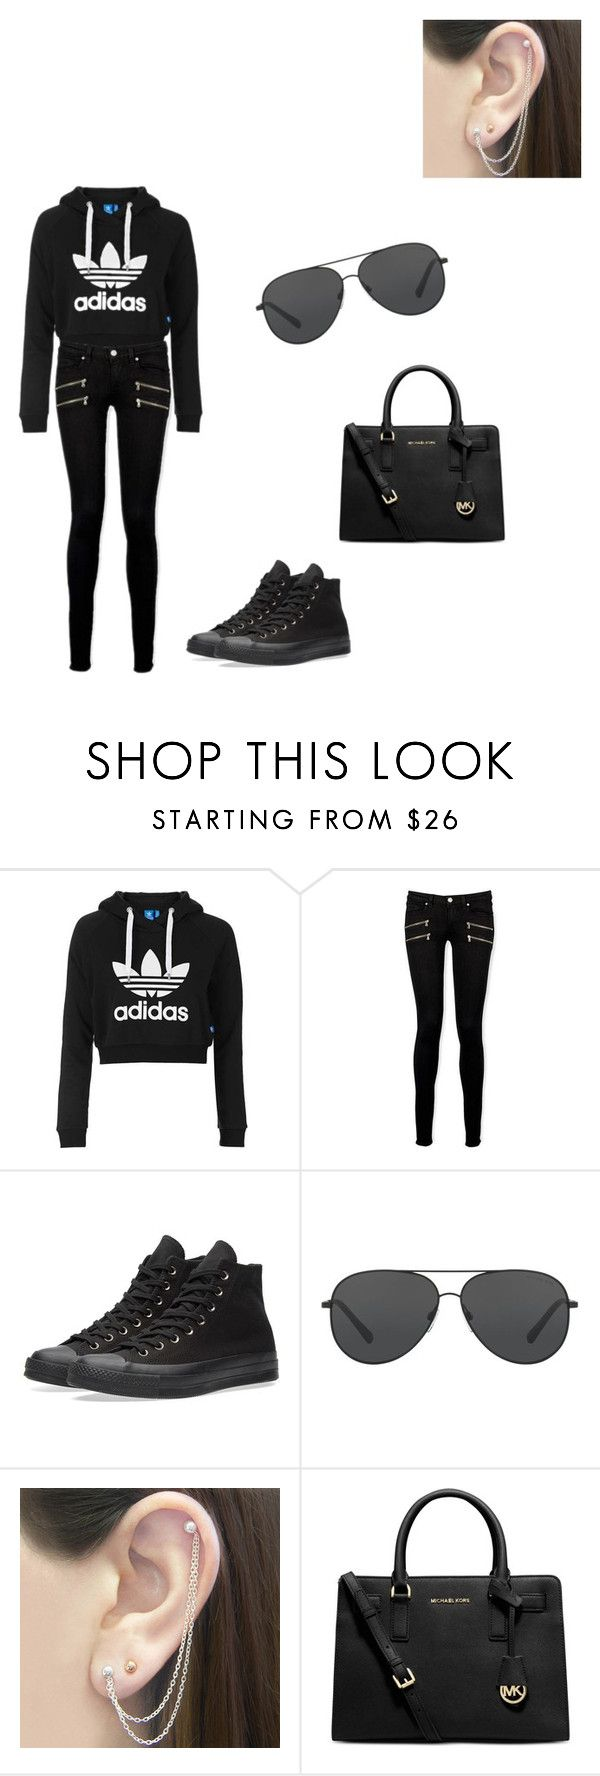 """""""Untitled #3"""" by duck-y ❤ liked on Polyvore featuring Topshop, Paige Denim, Converse, Michael Kors and Otis Jaxon"""